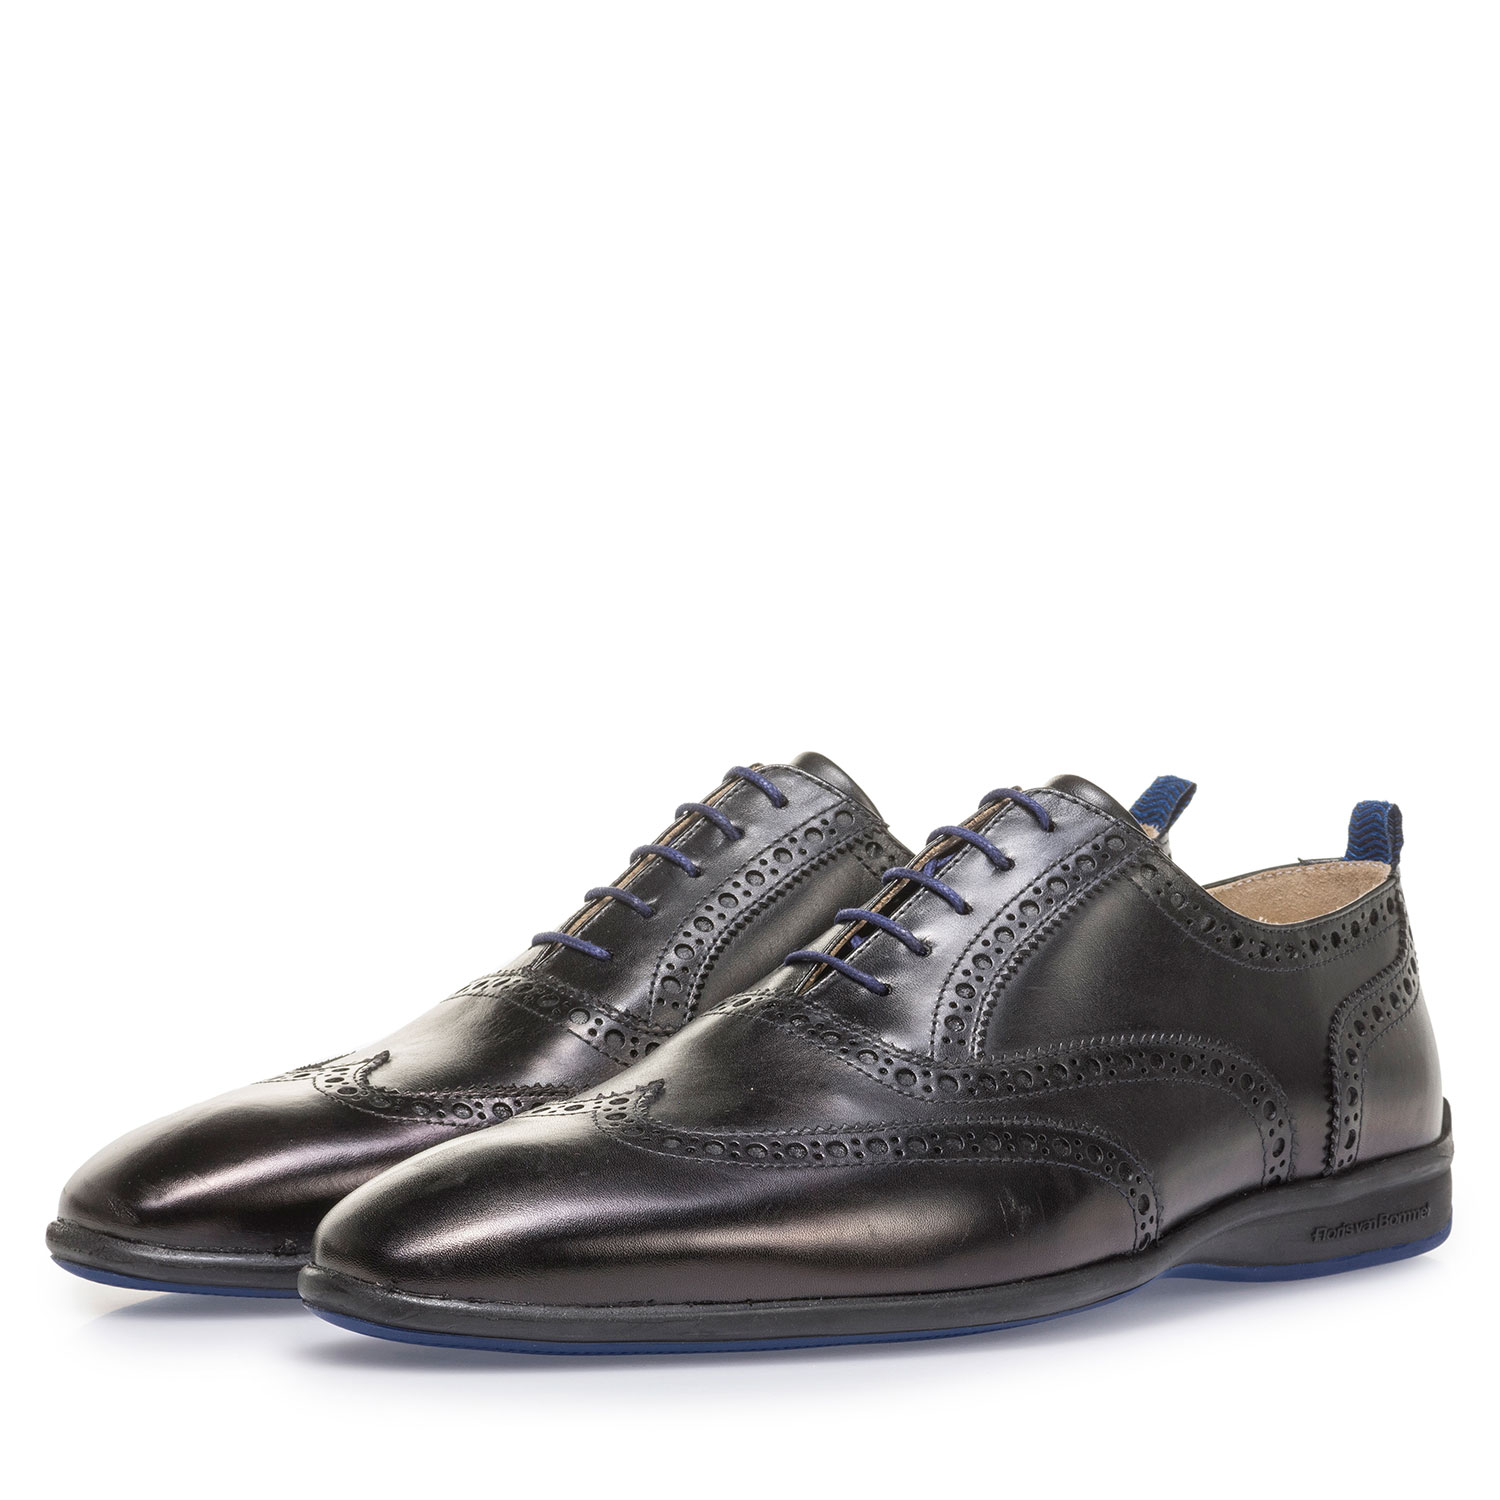 16360/10 - Black calf leather lace shoe